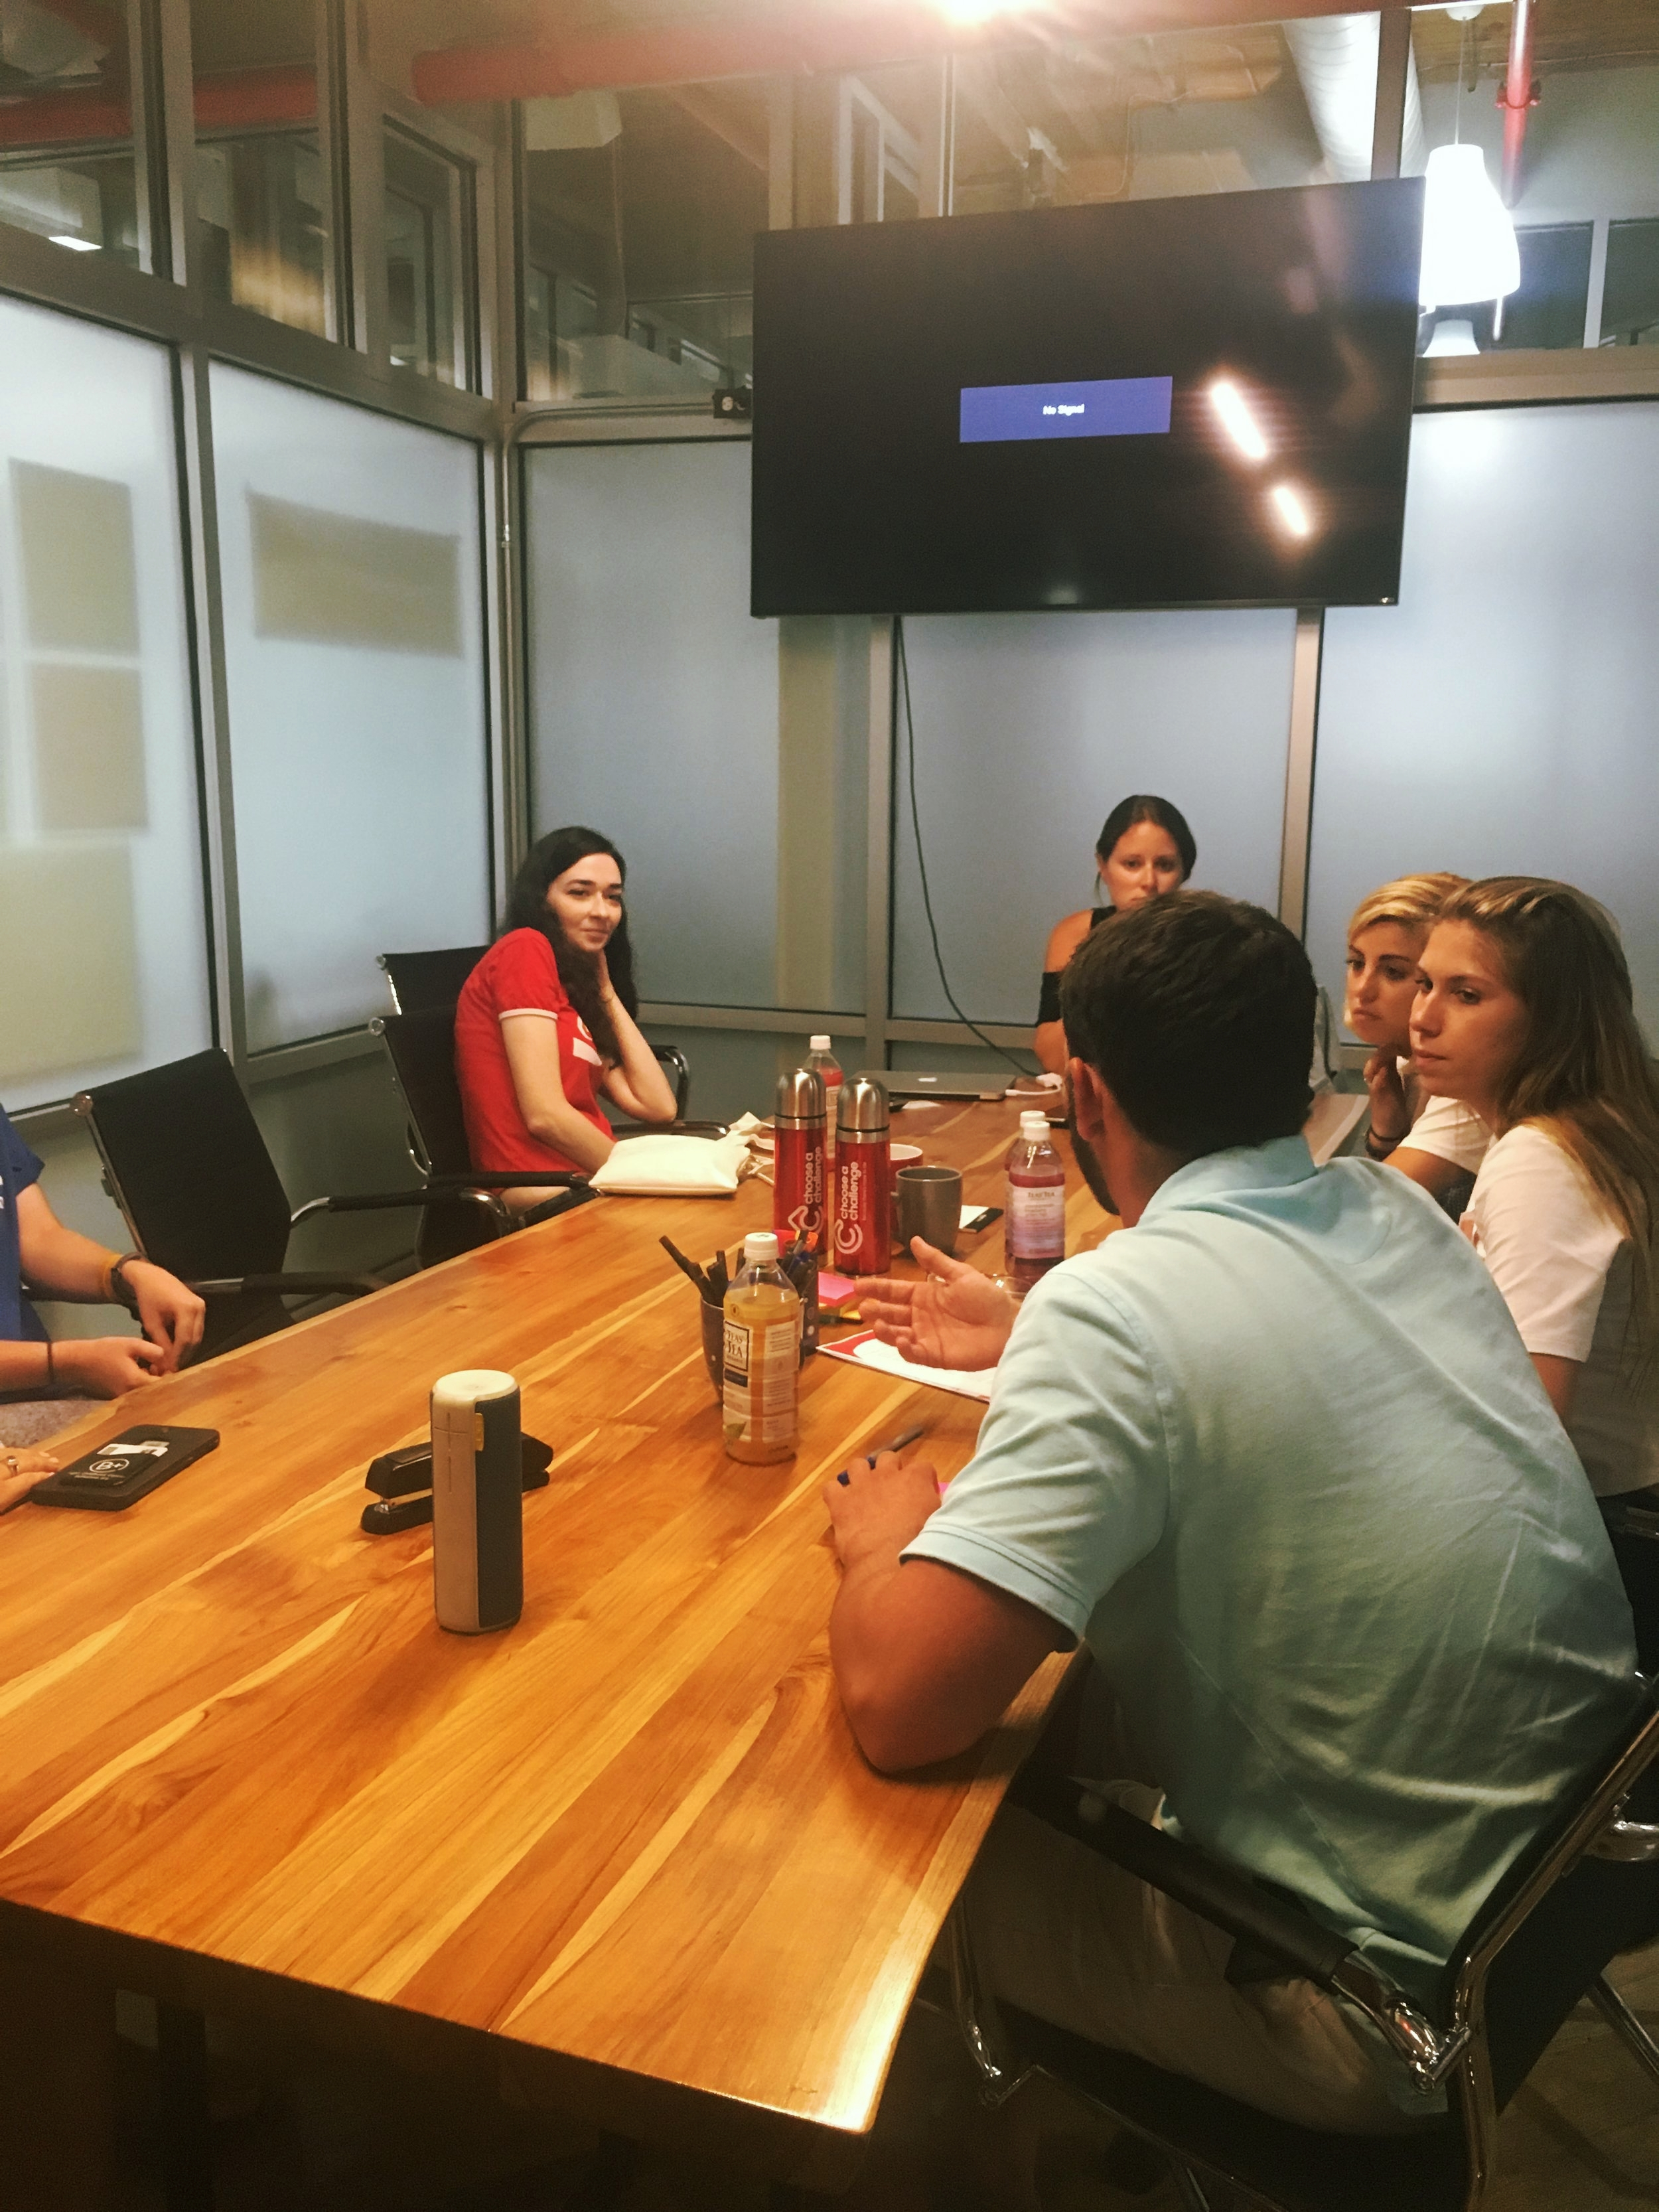 Charity Partners - Each leader who attended had the opportunity to meet with the charity they'd be fundraising for. Having all of Choose a Challenge's charity partners in attendance for face-to-face meetings creates real value for our leaders because they are able to learn about the impact of their efforts and how it can make a difference in the lives of others.To see our full list of charity partners:Click here